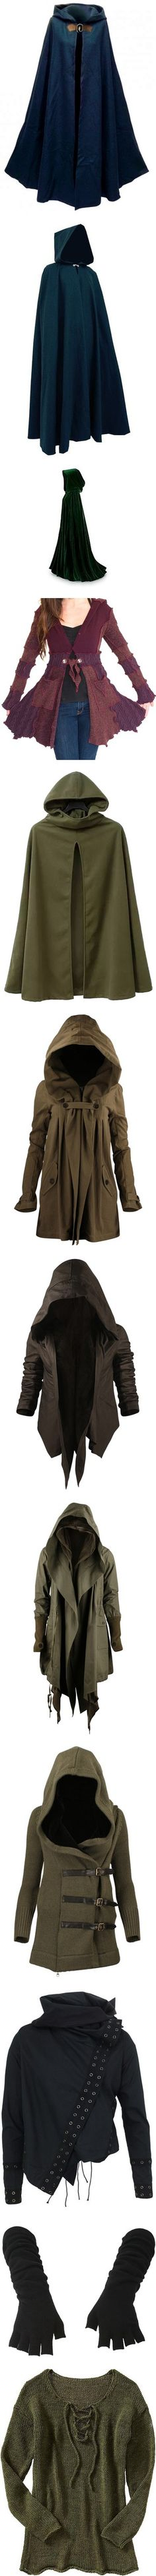 medieval stuff by doodleninja on Polyvore featuring women's fashion, cloaks, medieval, outerwear, jackets, capes, men's fashion, costume, dresses and costumes